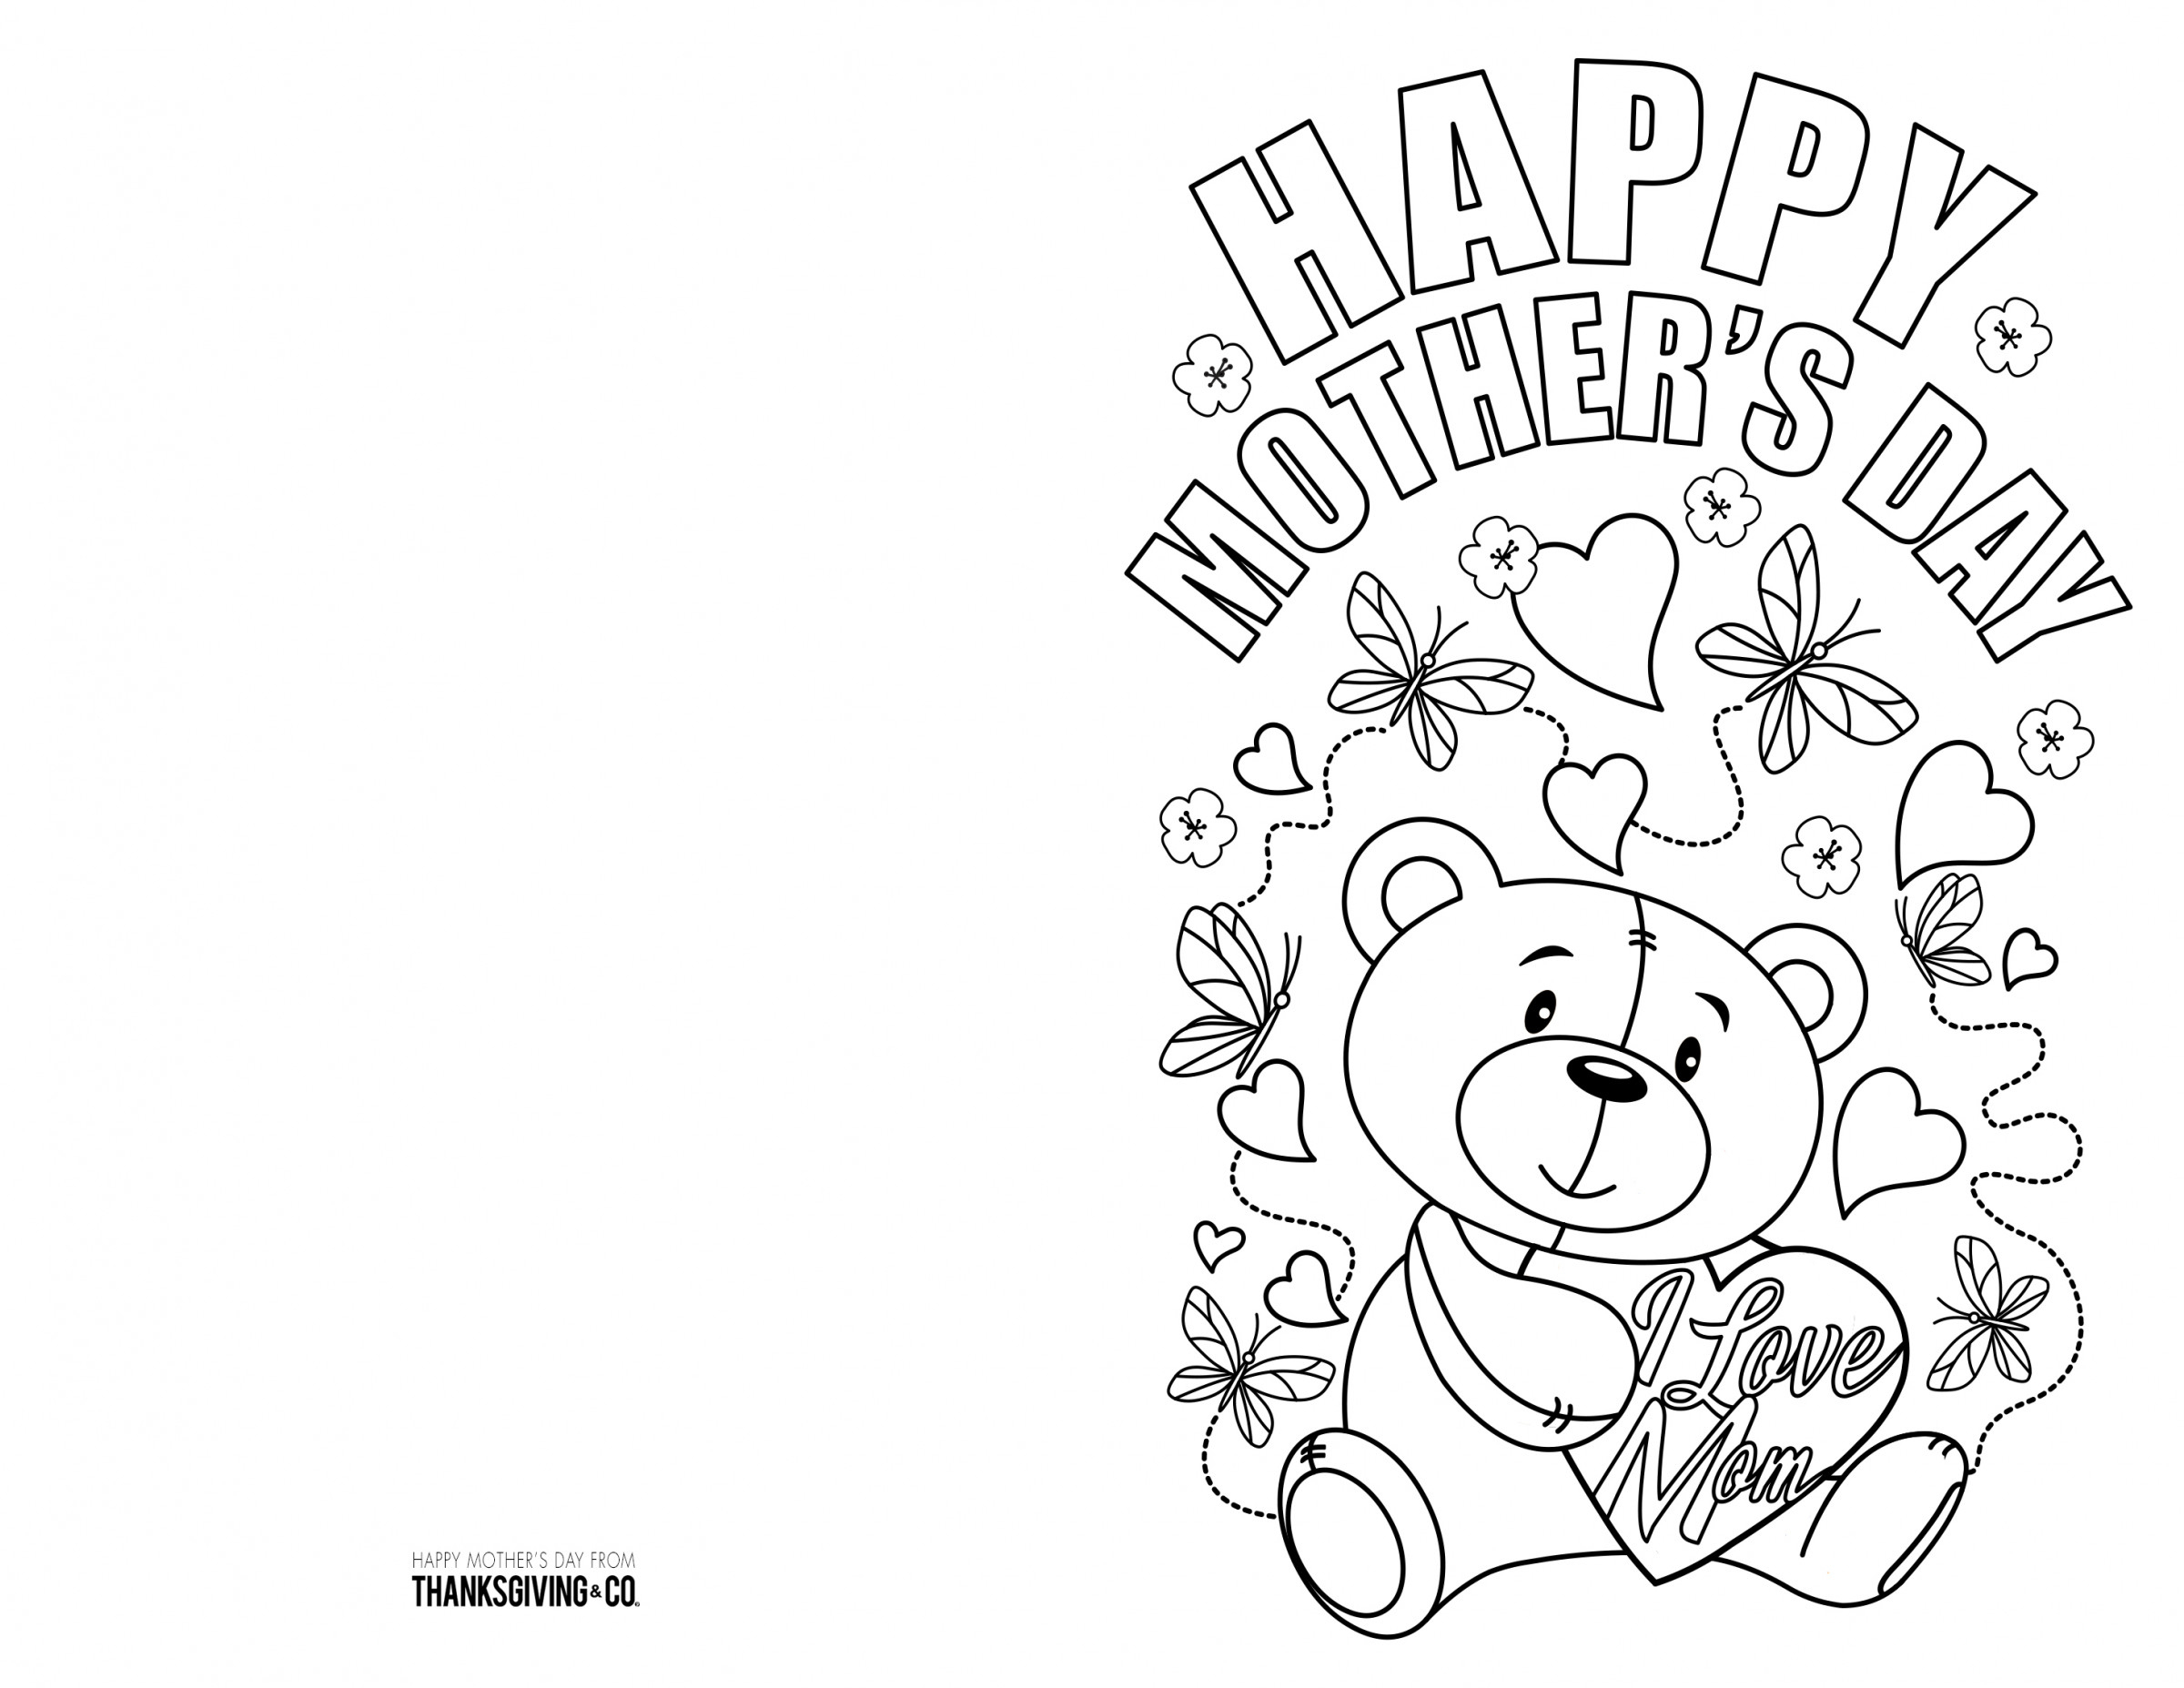 4 Free Printable Mother's Day Ecards To Color - Thanksgiving - Free Printable Mothers Day Coloring Cards